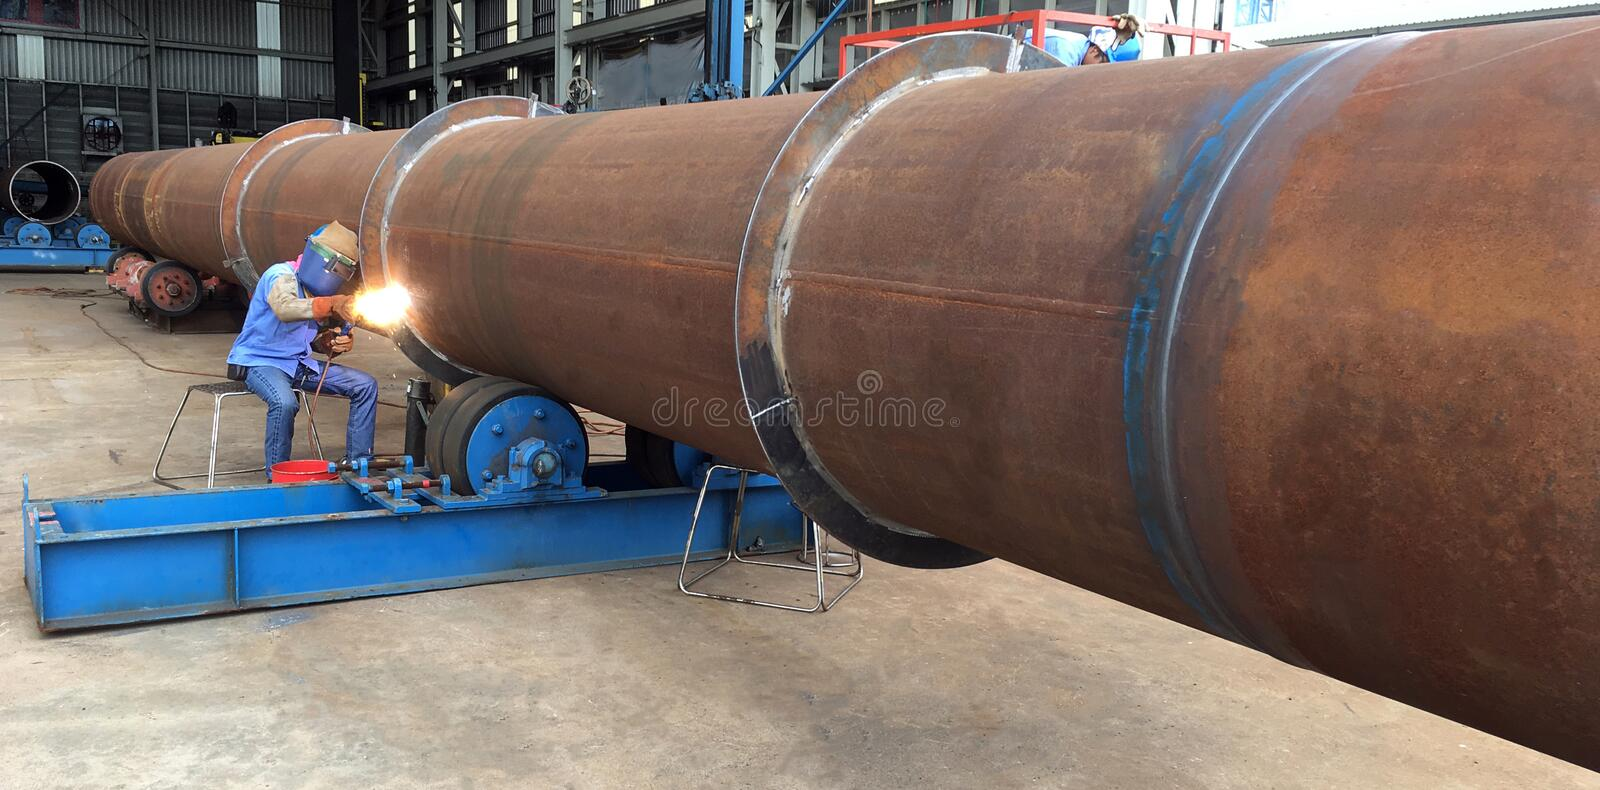 Welding person weld oil and gas offshore industry big pipe work. Welding technician weld big pipe work in oil and gas offshore industry in a fabrication yard royalty free stock photo